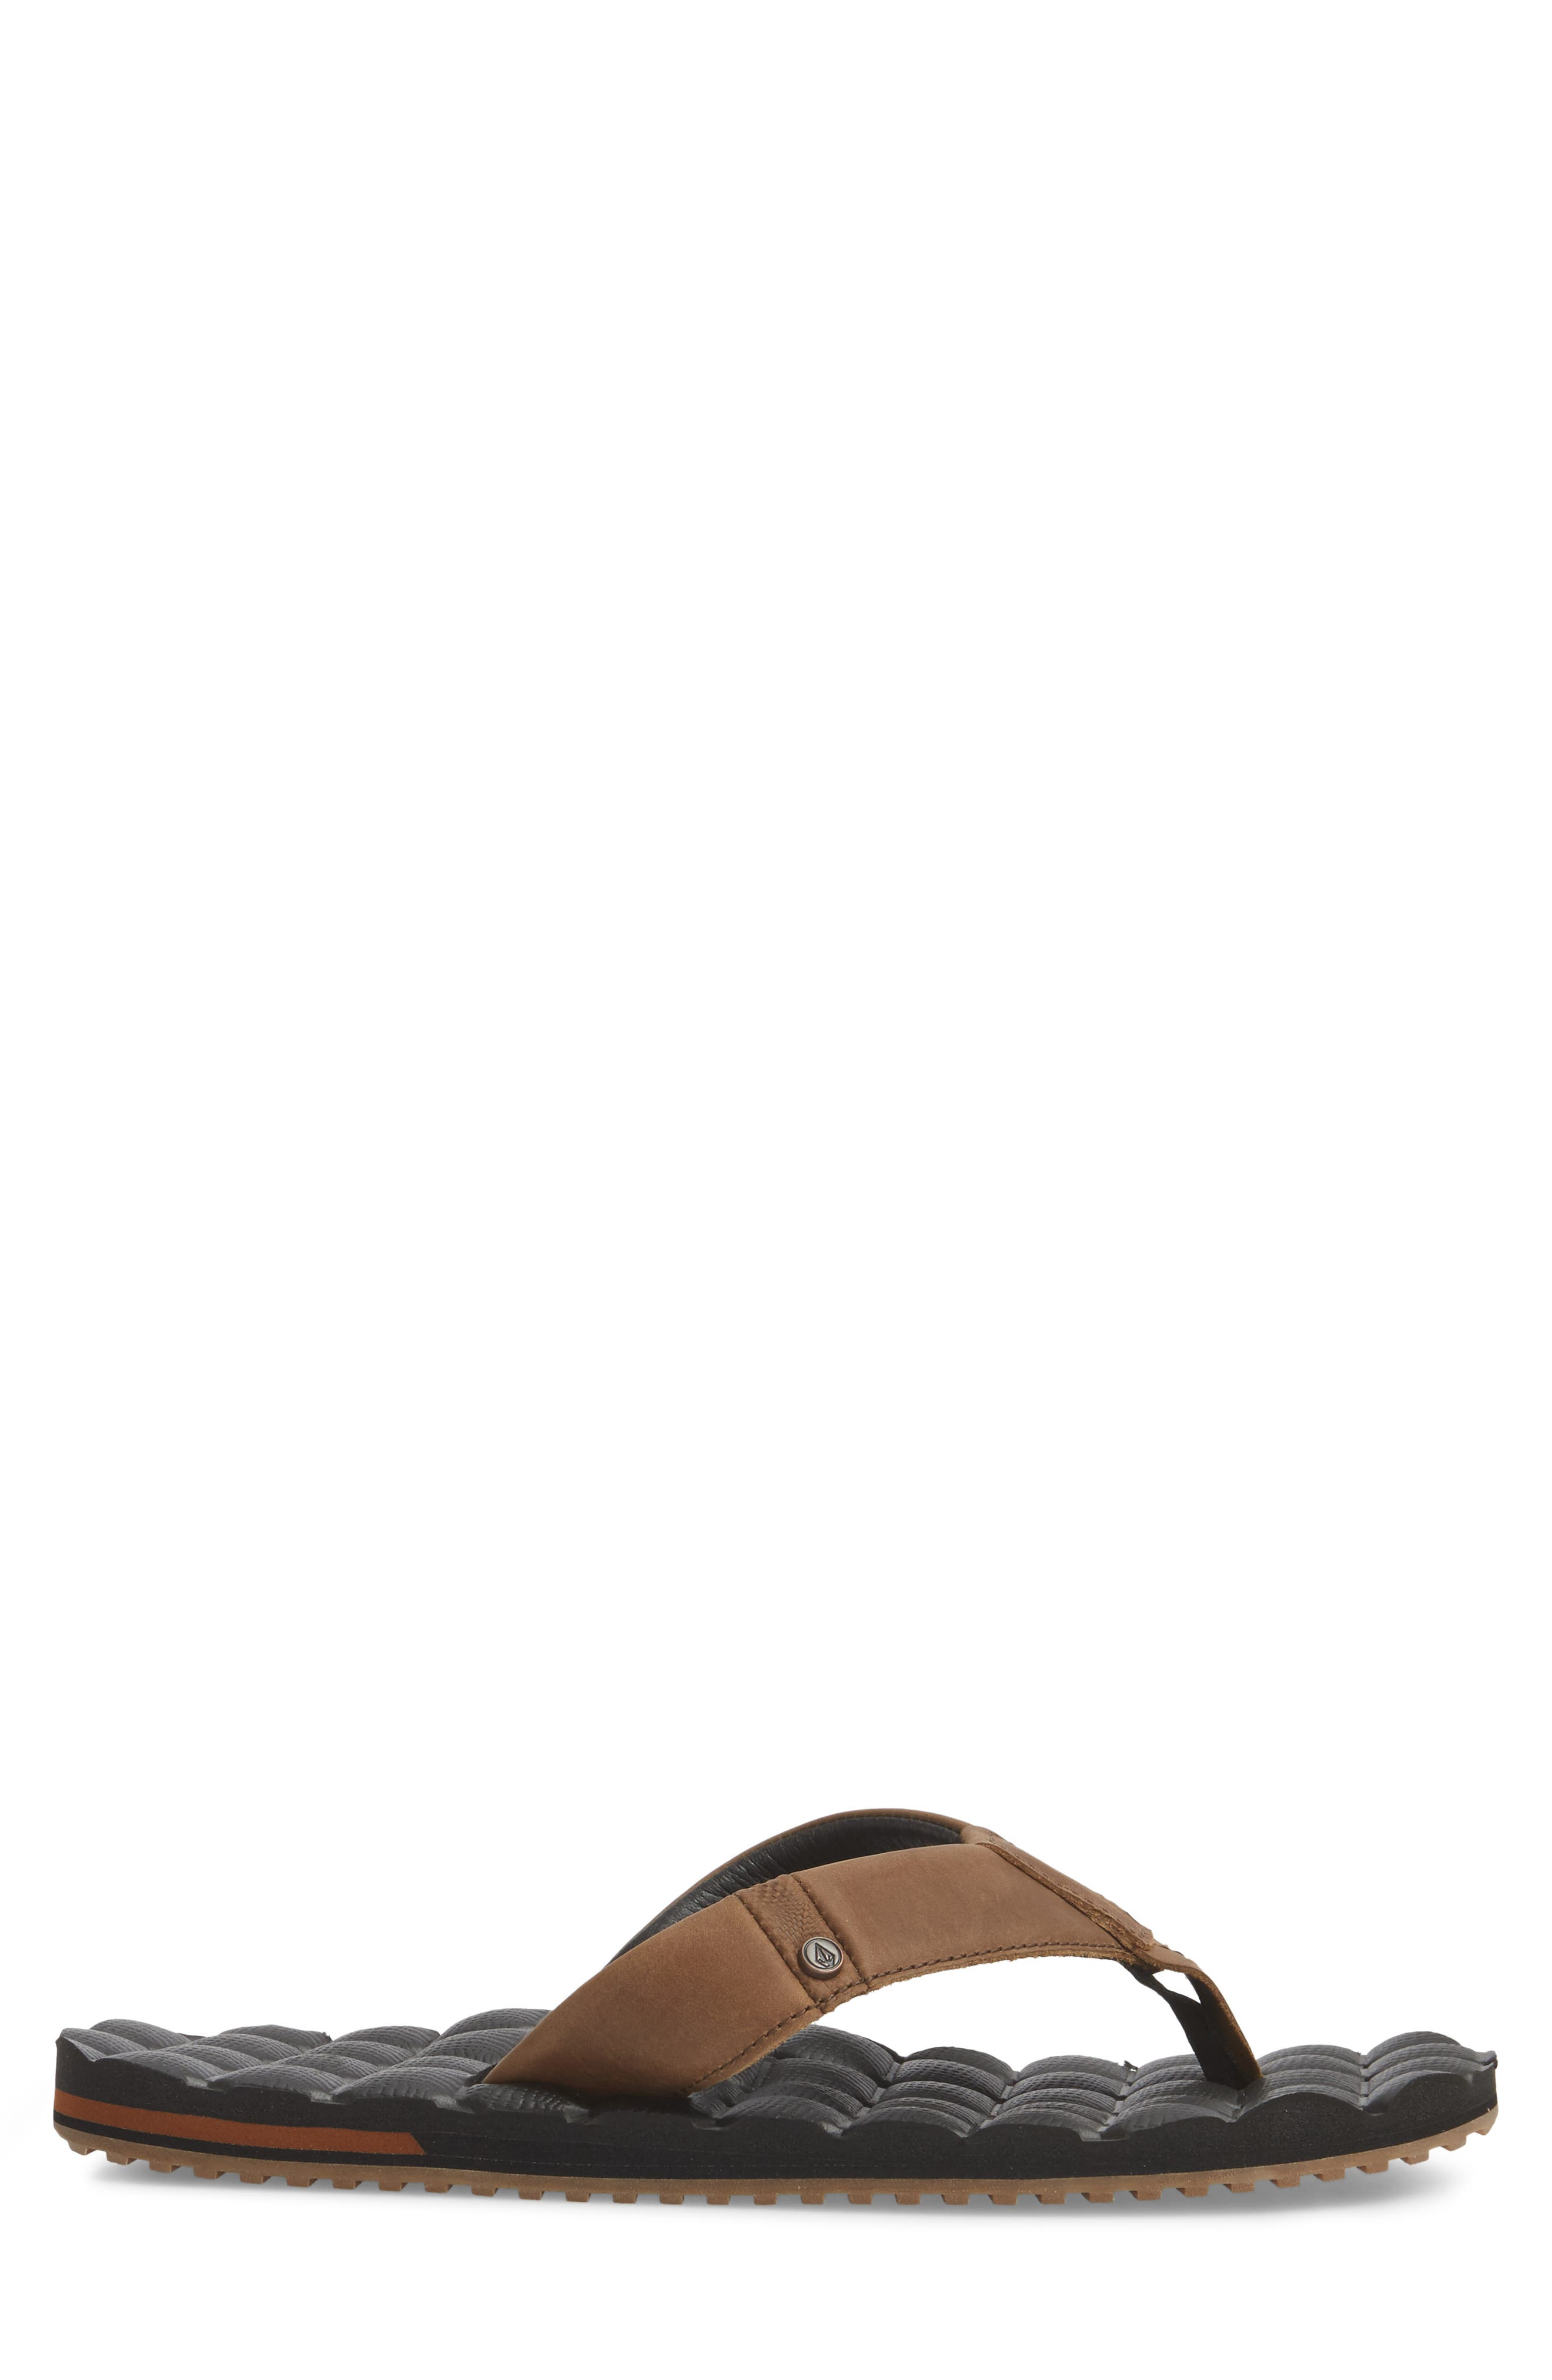 'Recliner' Leather Flip Flop,                             Alternate thumbnail 3, color,                             Brown Leather